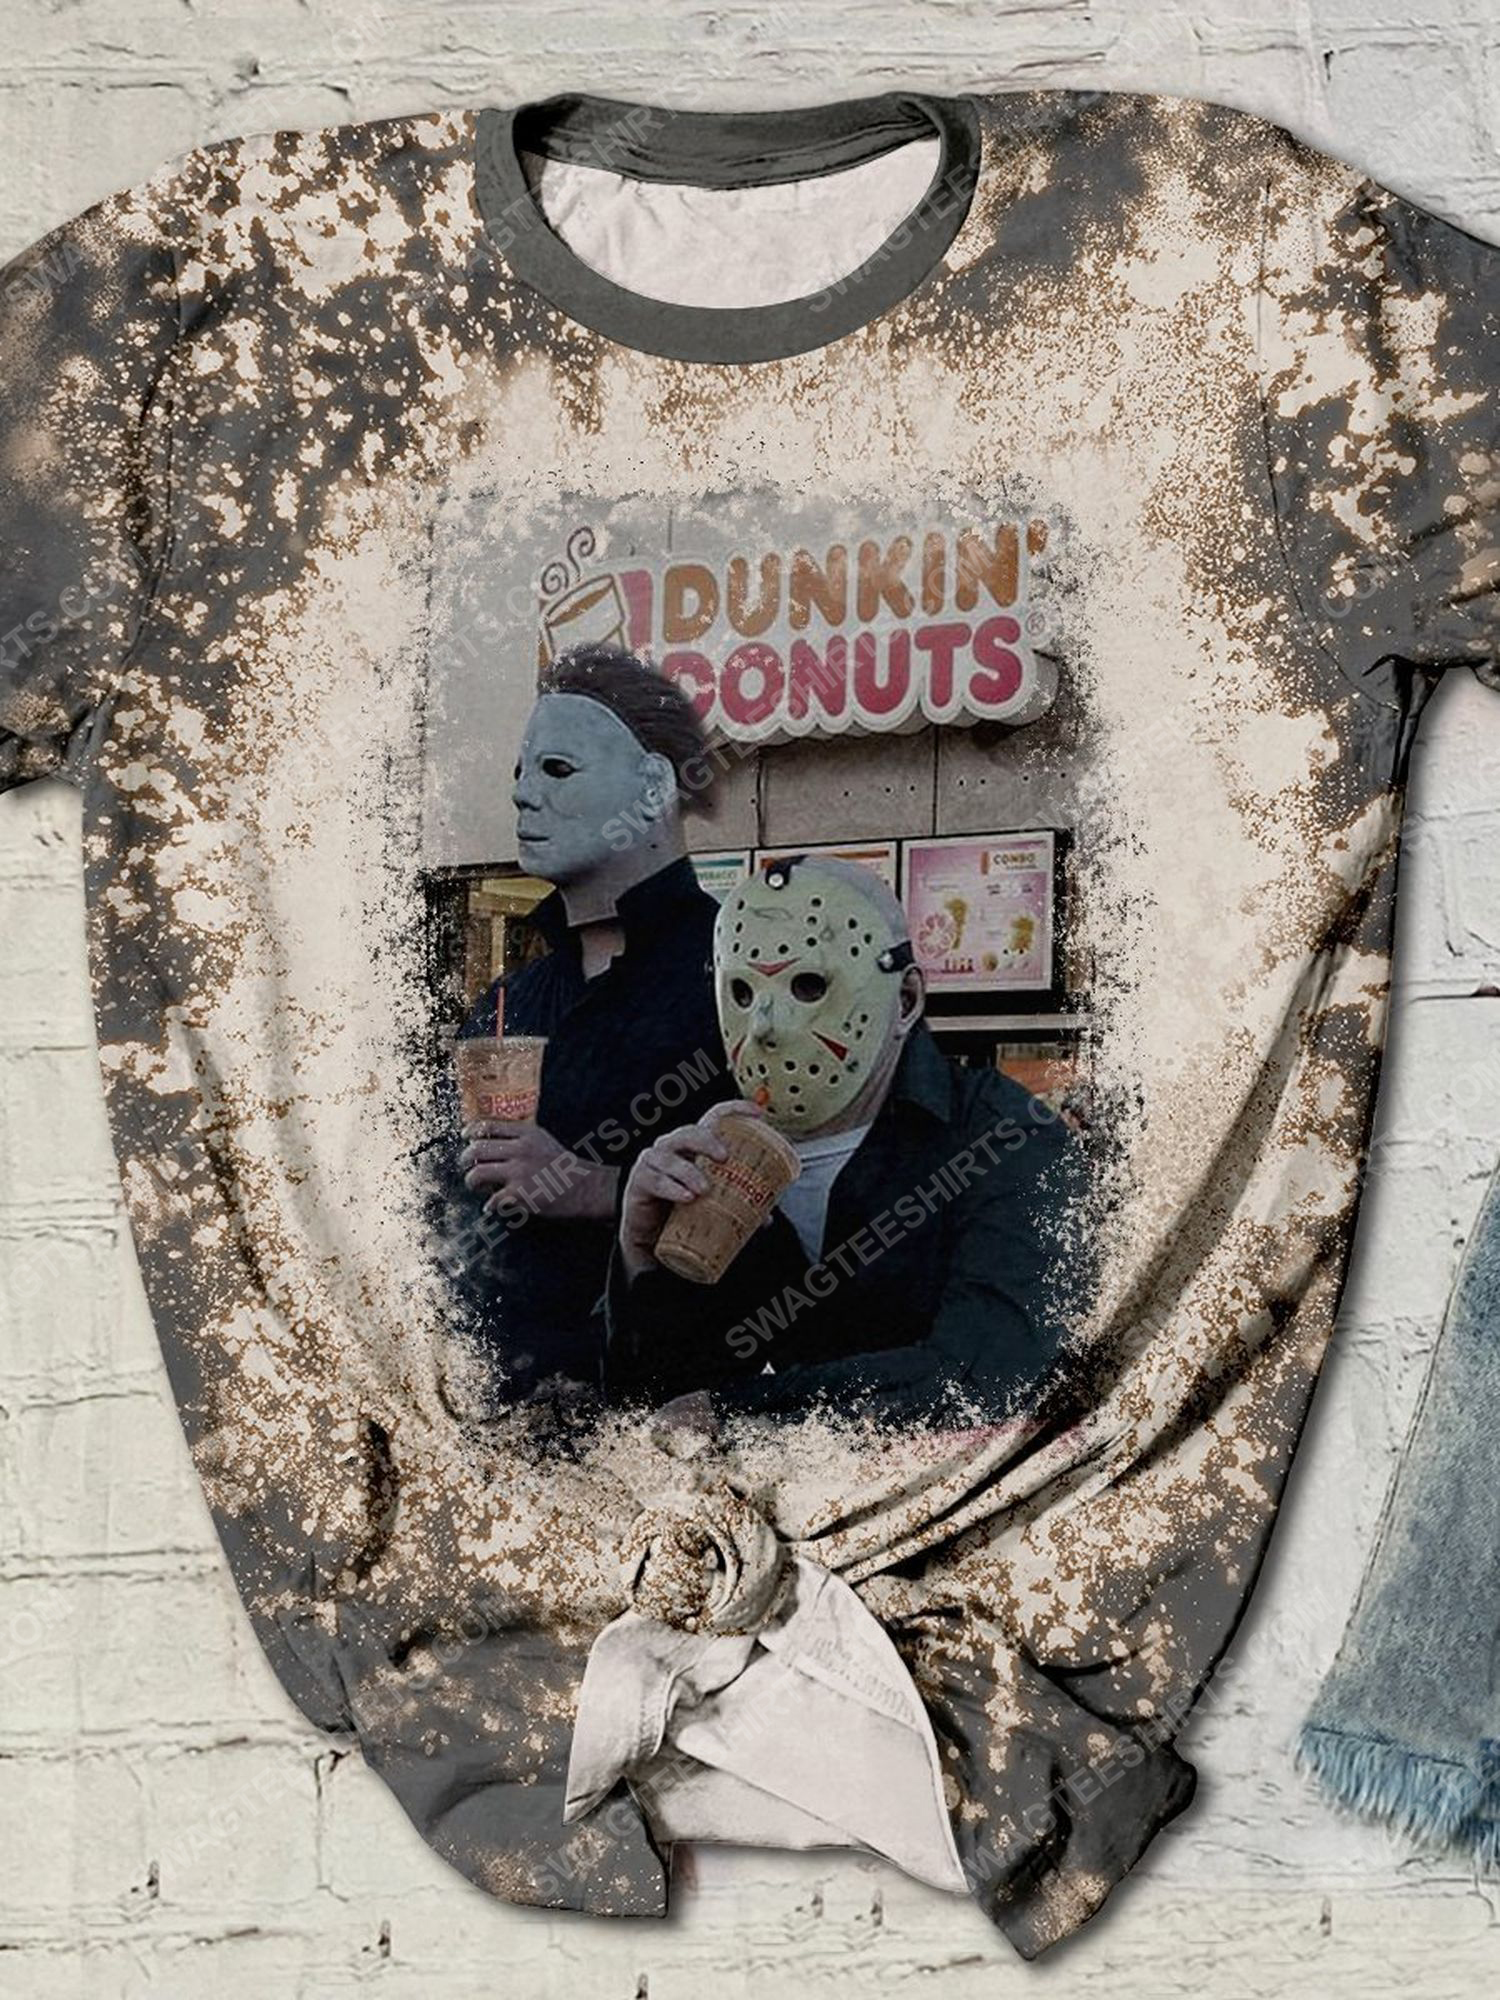 Halloween horror movie characters dunkin donuts bleached shirt 1 - Copy (3)